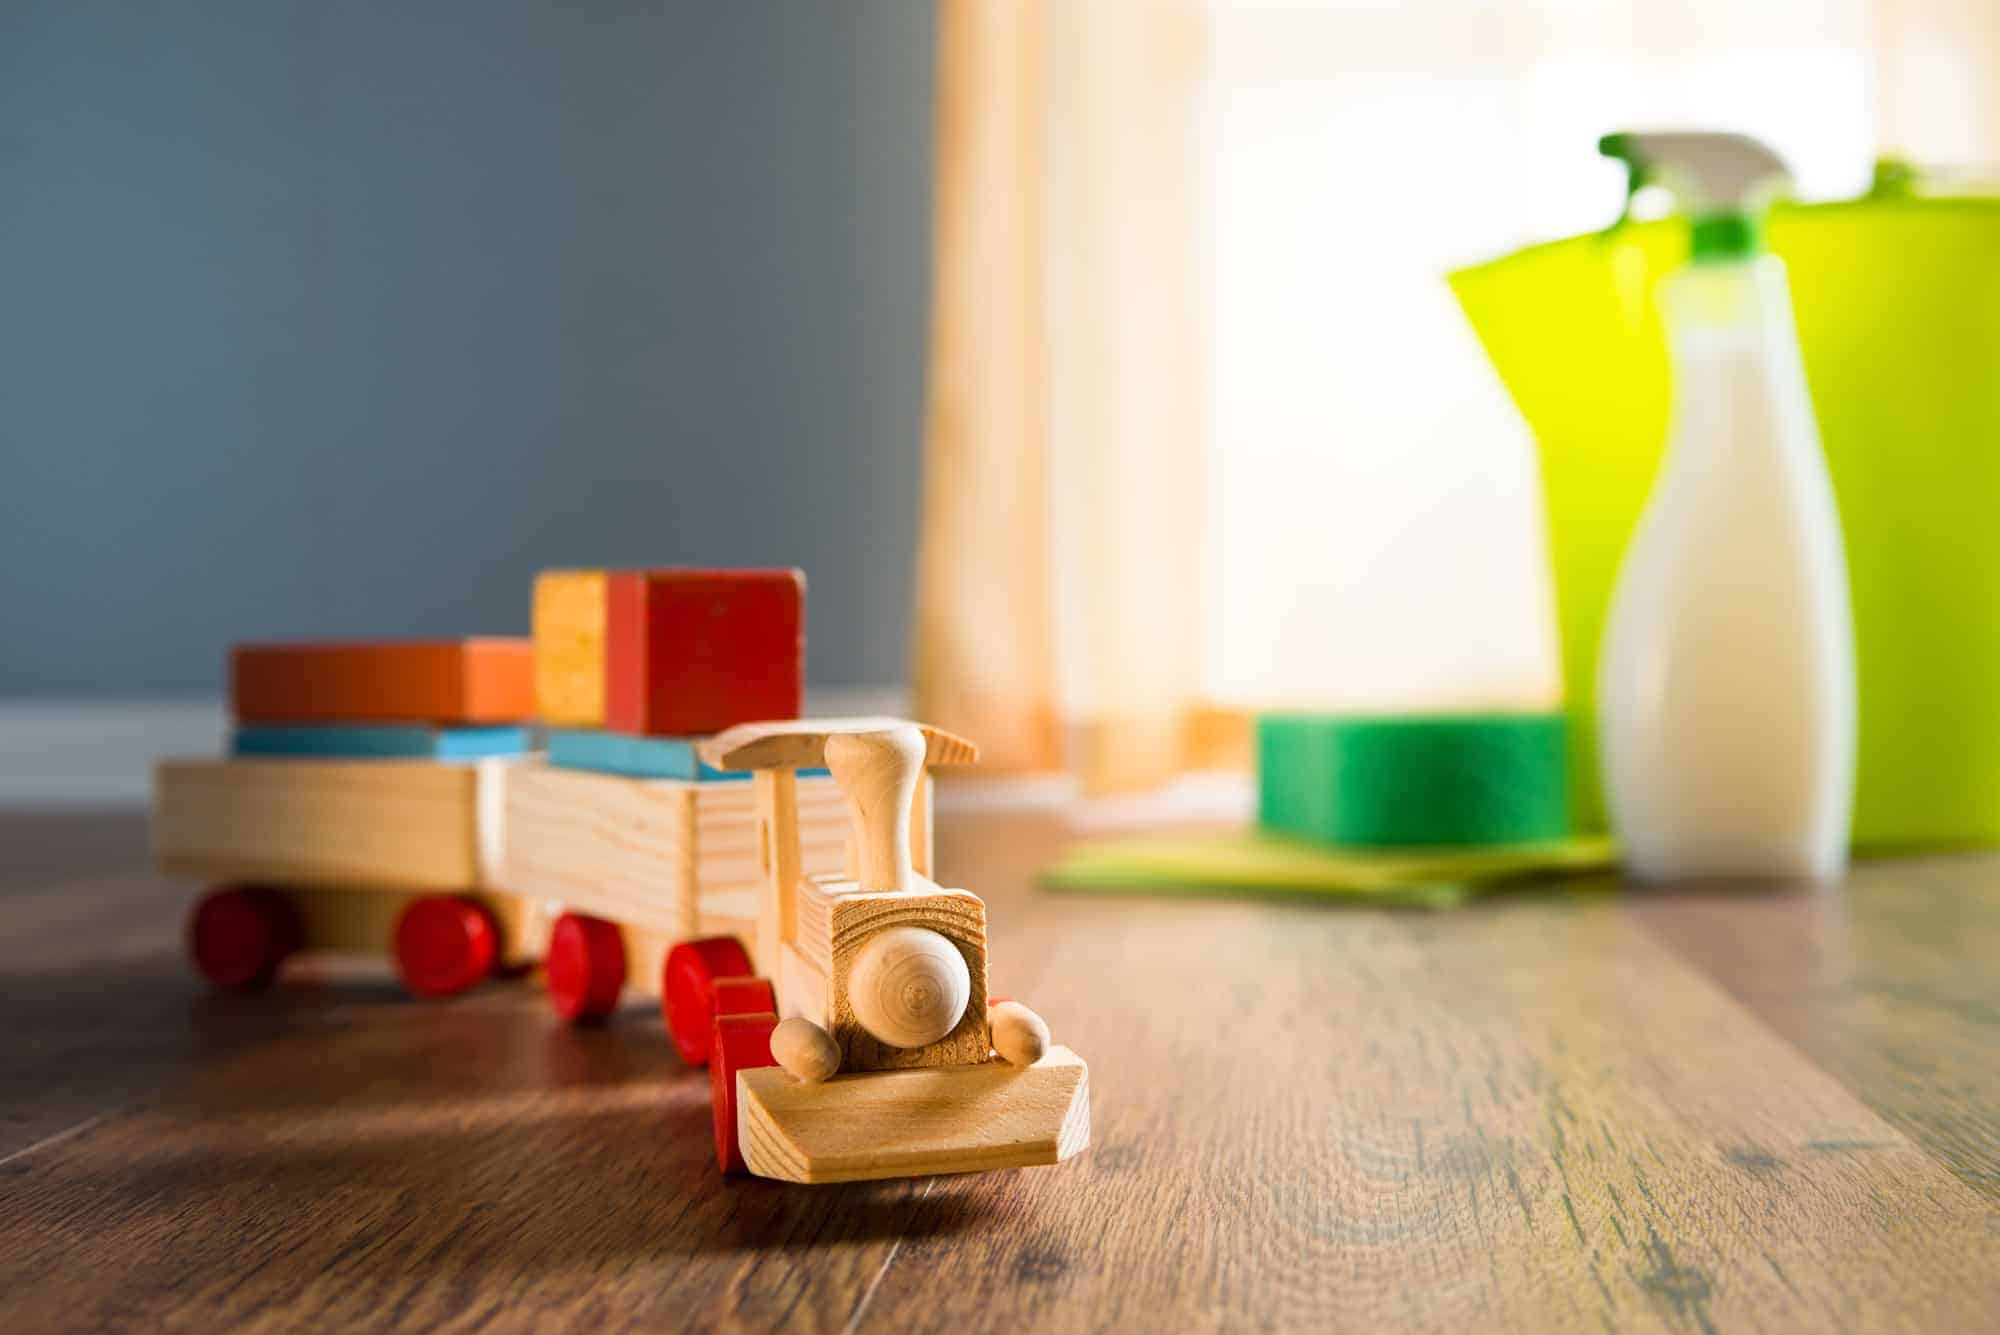 Wooden toy train with non-toxic cleaning products